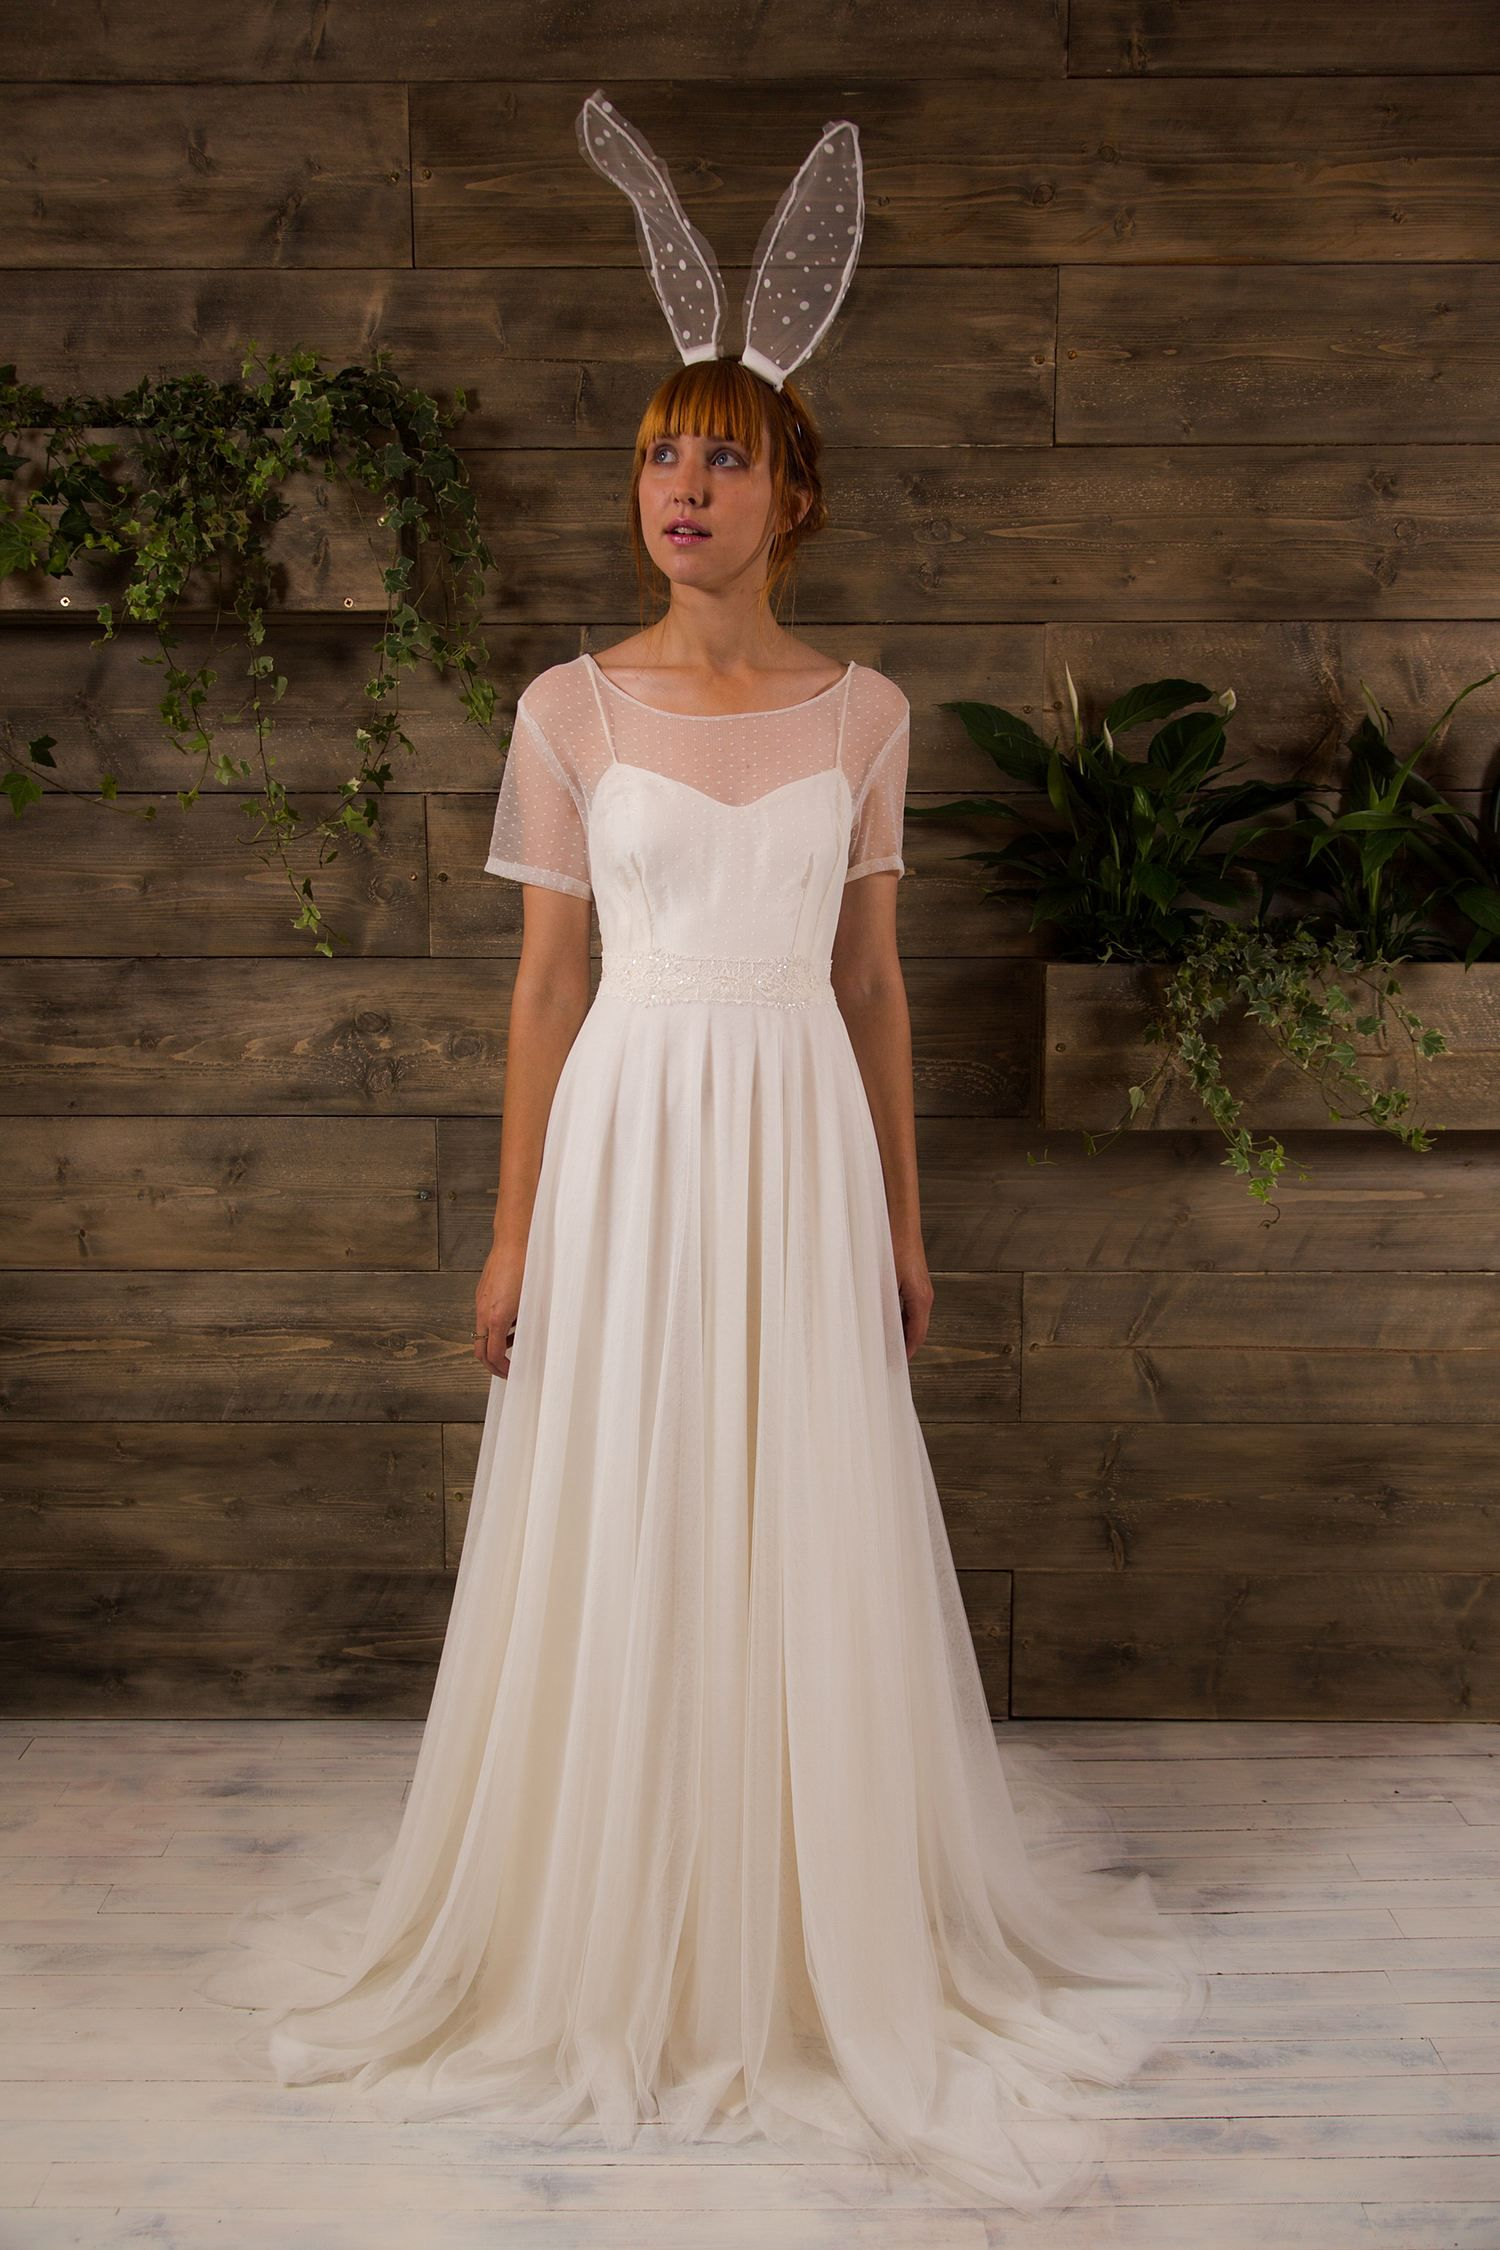 Neive dress by E | Every girl needs a wedding board apparently ...